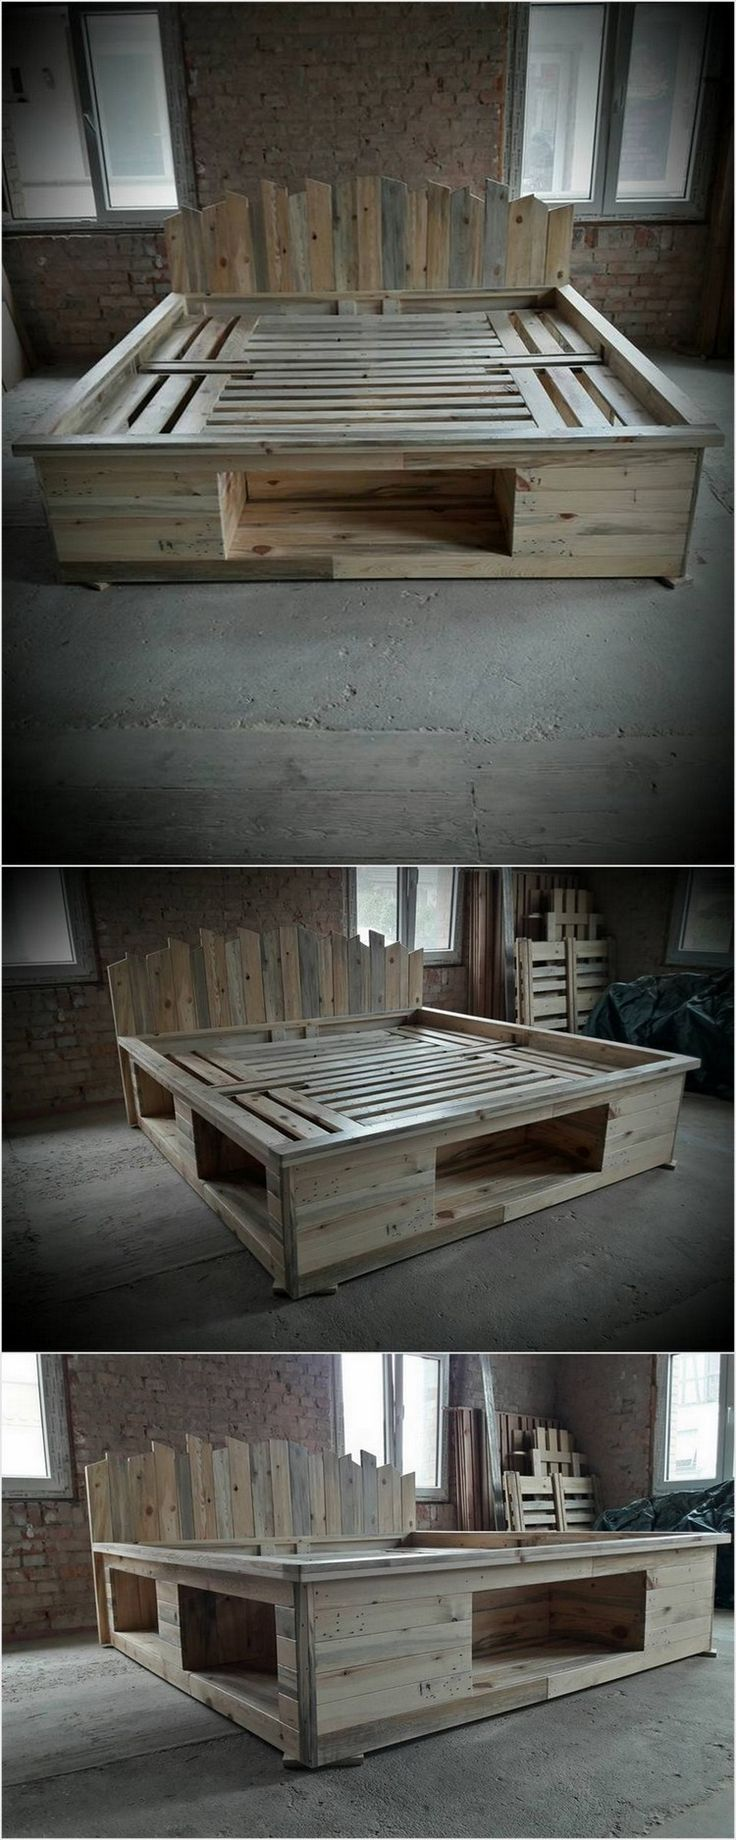 Price Worthy Awesome Shipping Pallet Recycling Ideas | Betten ...